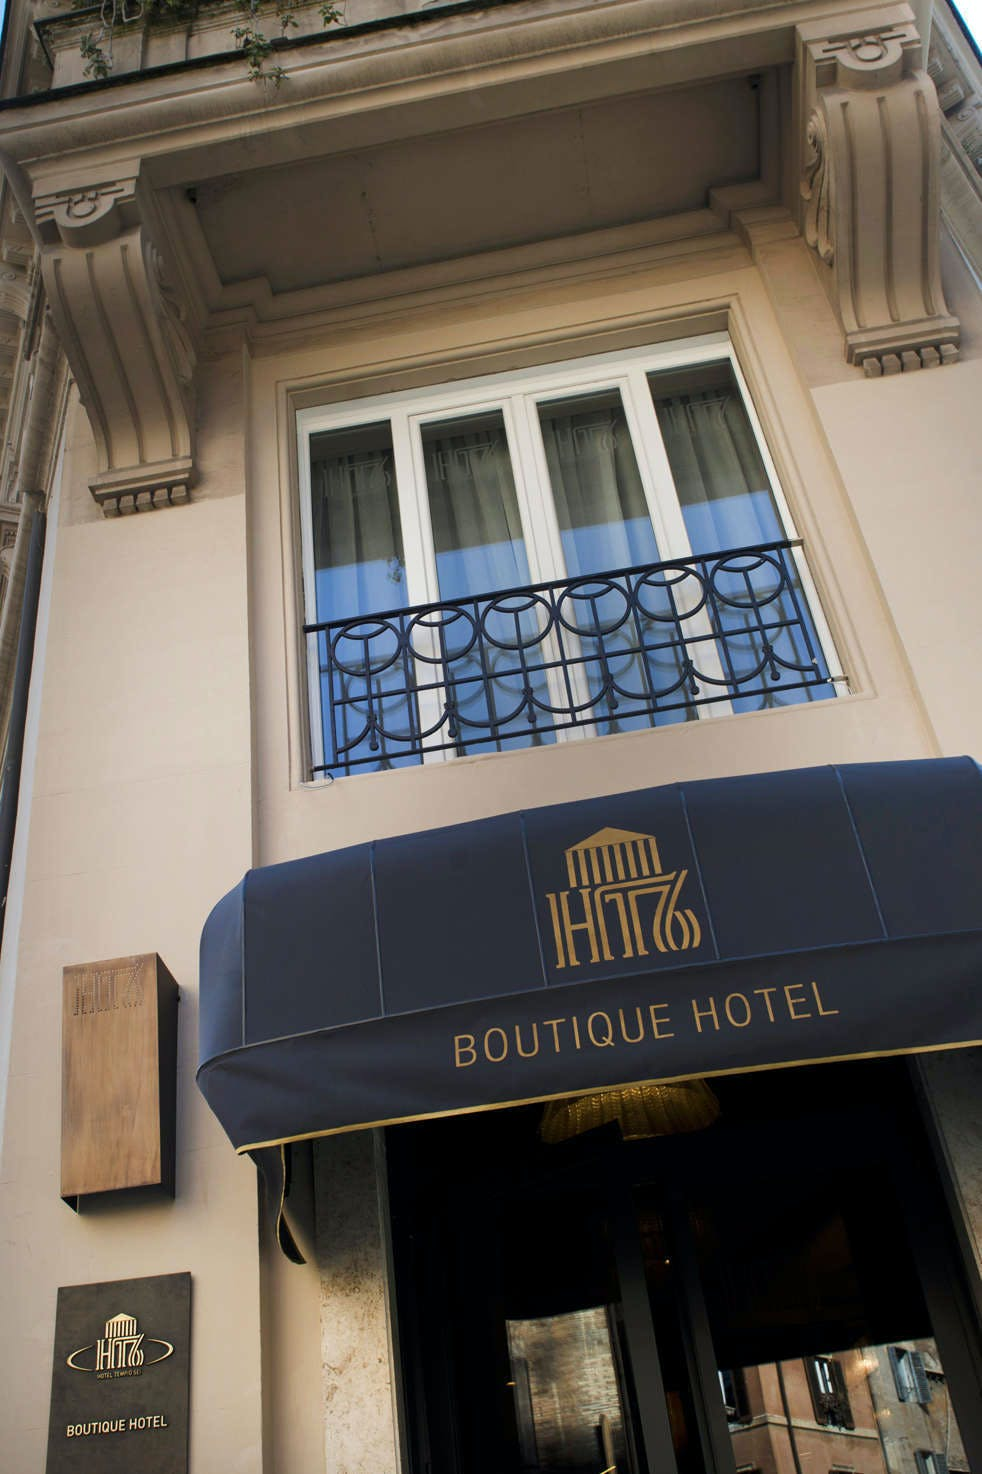 HT6 Hotel Boutique Hotel